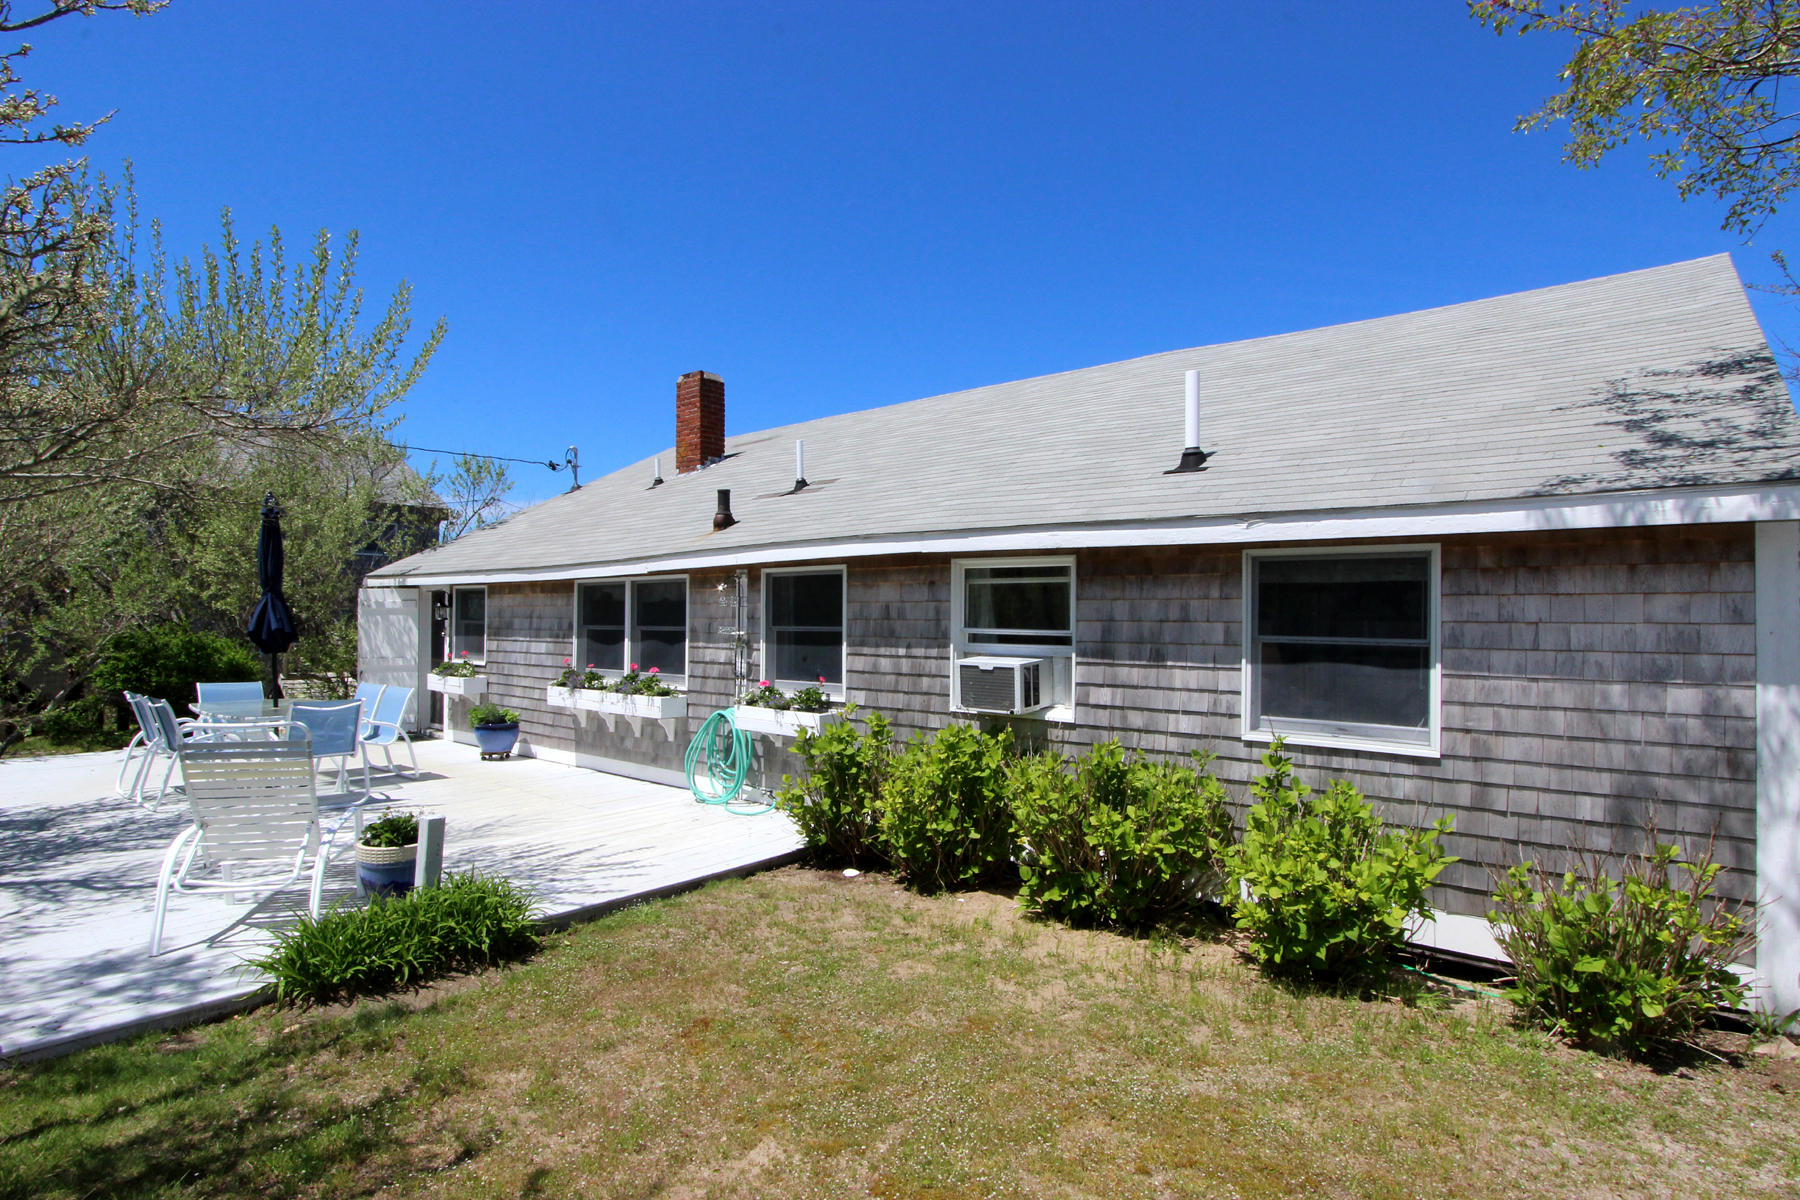 192 robbins hill road brewster ma 02631 property image 20